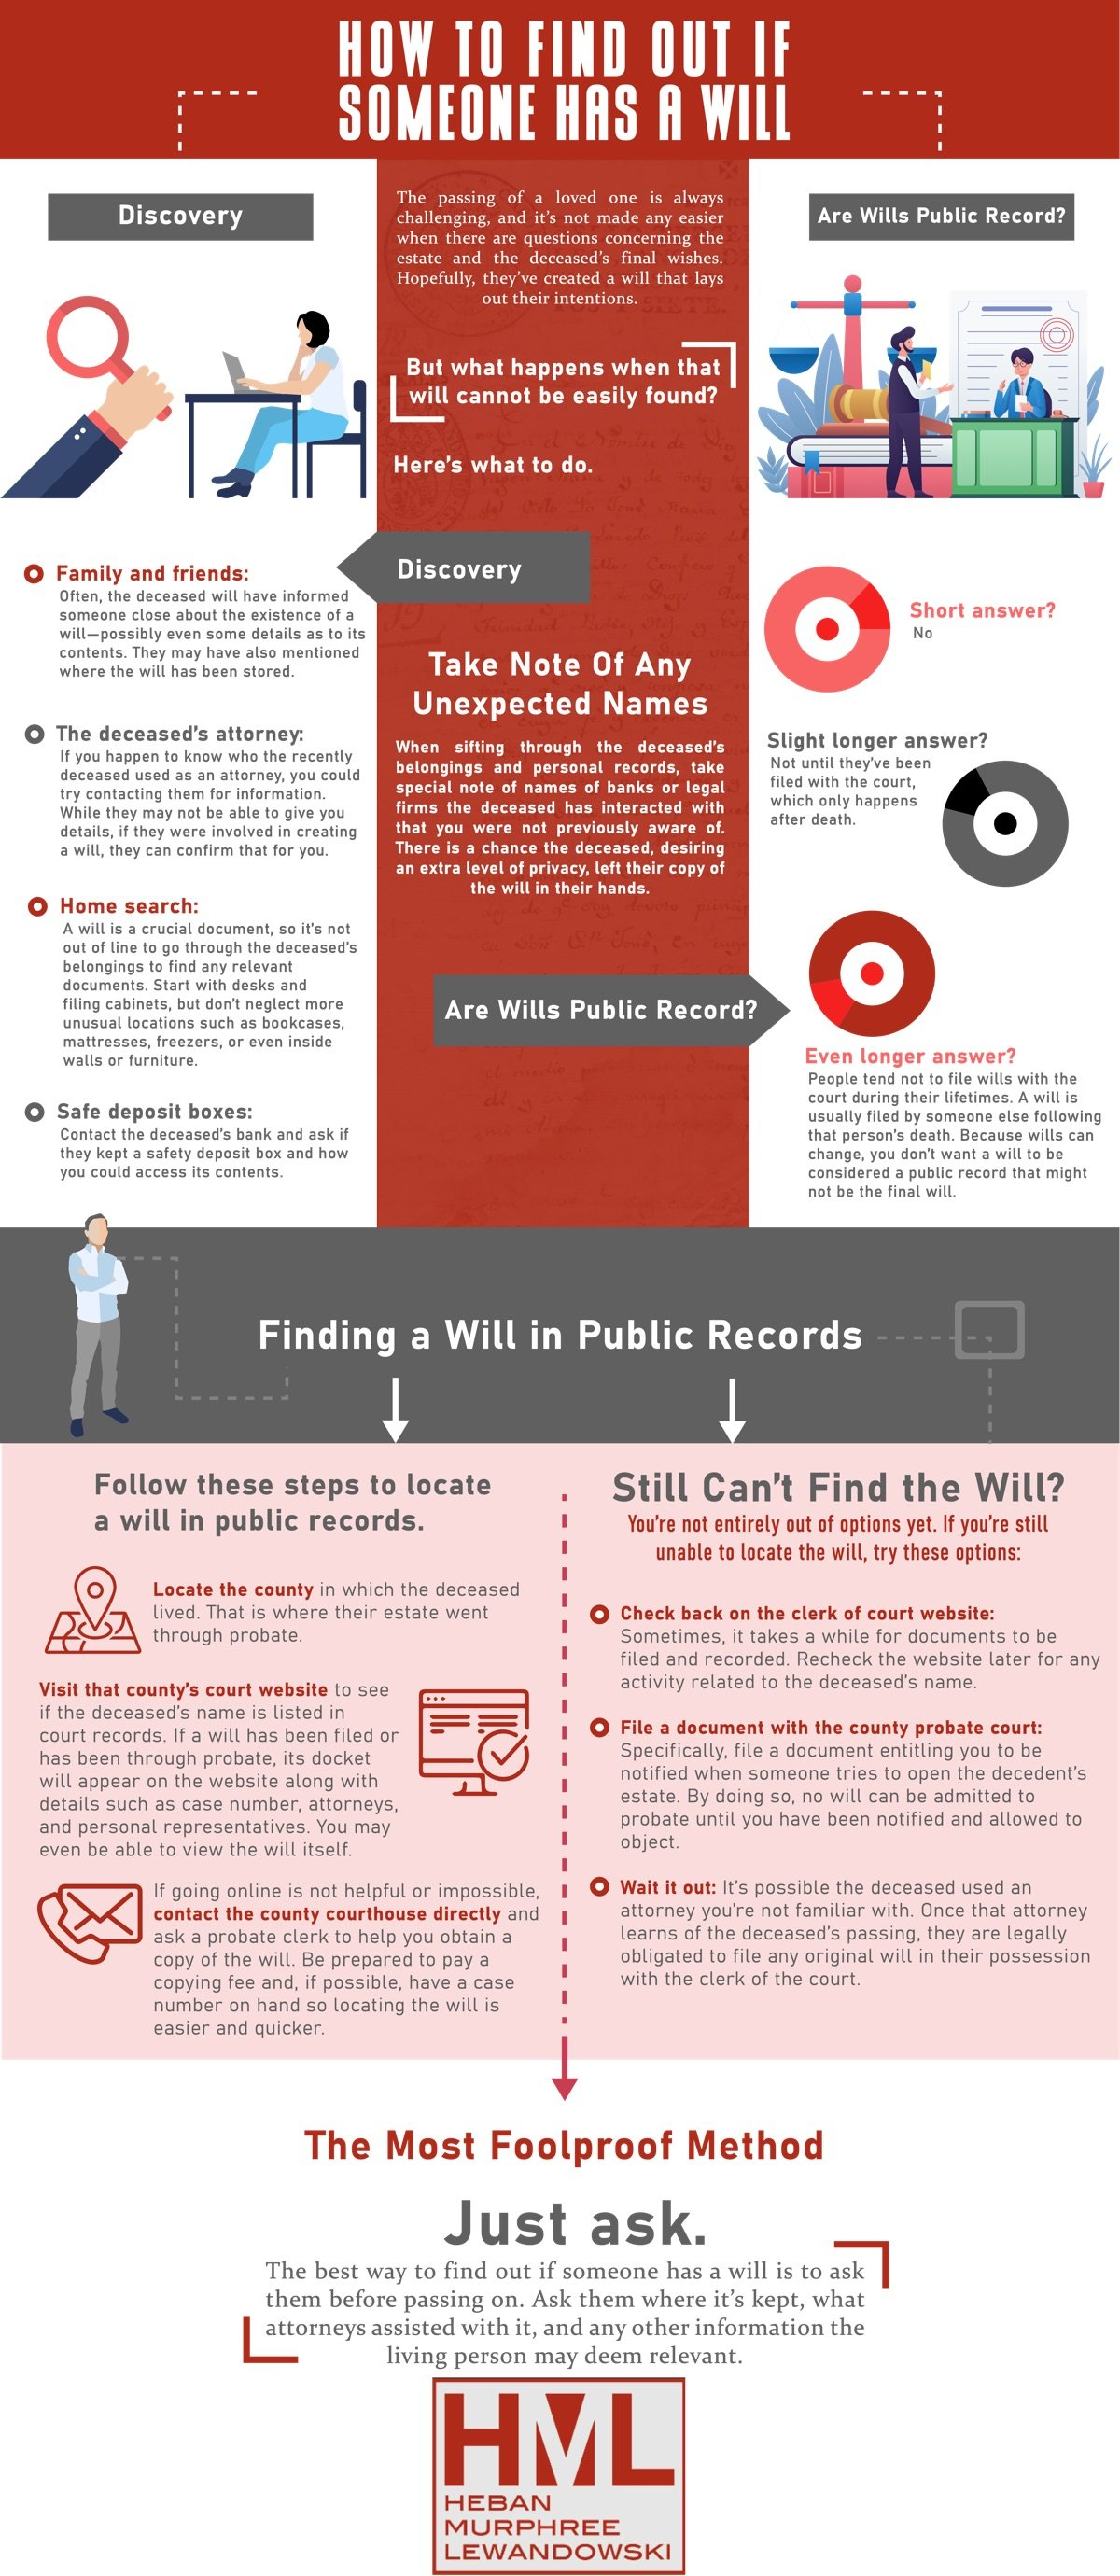 How To Find Out If Someone Has A Will - Infographic